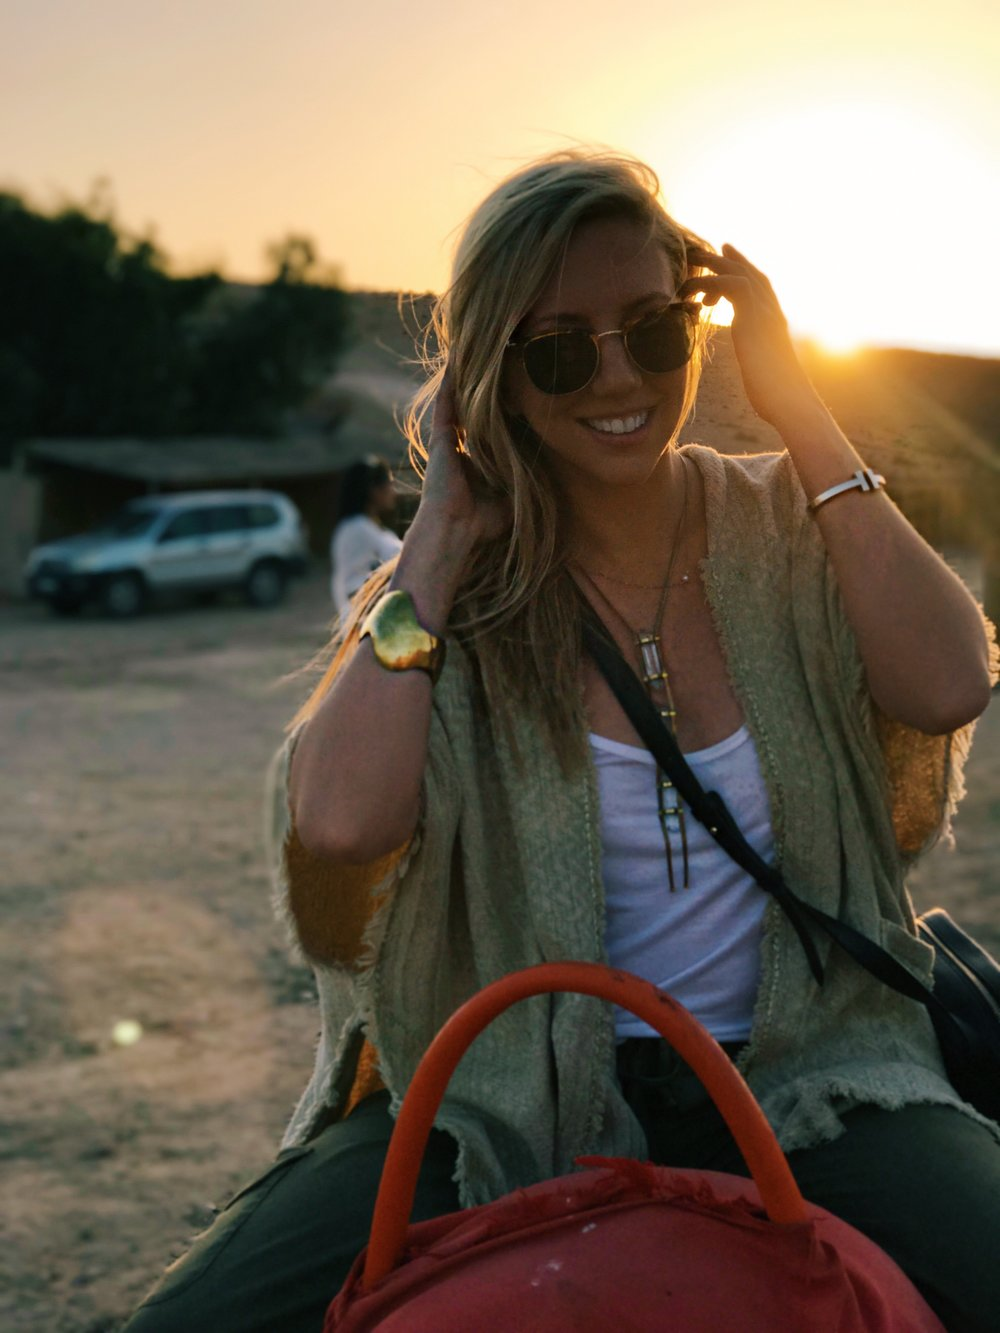 ADVENTURES IN THE AGAFAY |  A SUNSET CAMEL CRUISE IN THE AGAFAY DESERT FOLLOWED BY MINT TEA, DINNER, BELLYDANCING (WITH A CAMEO BY YOURS TRULY), MOROCCAN ROSÉ, MORE MINT TEA AND SHISHA